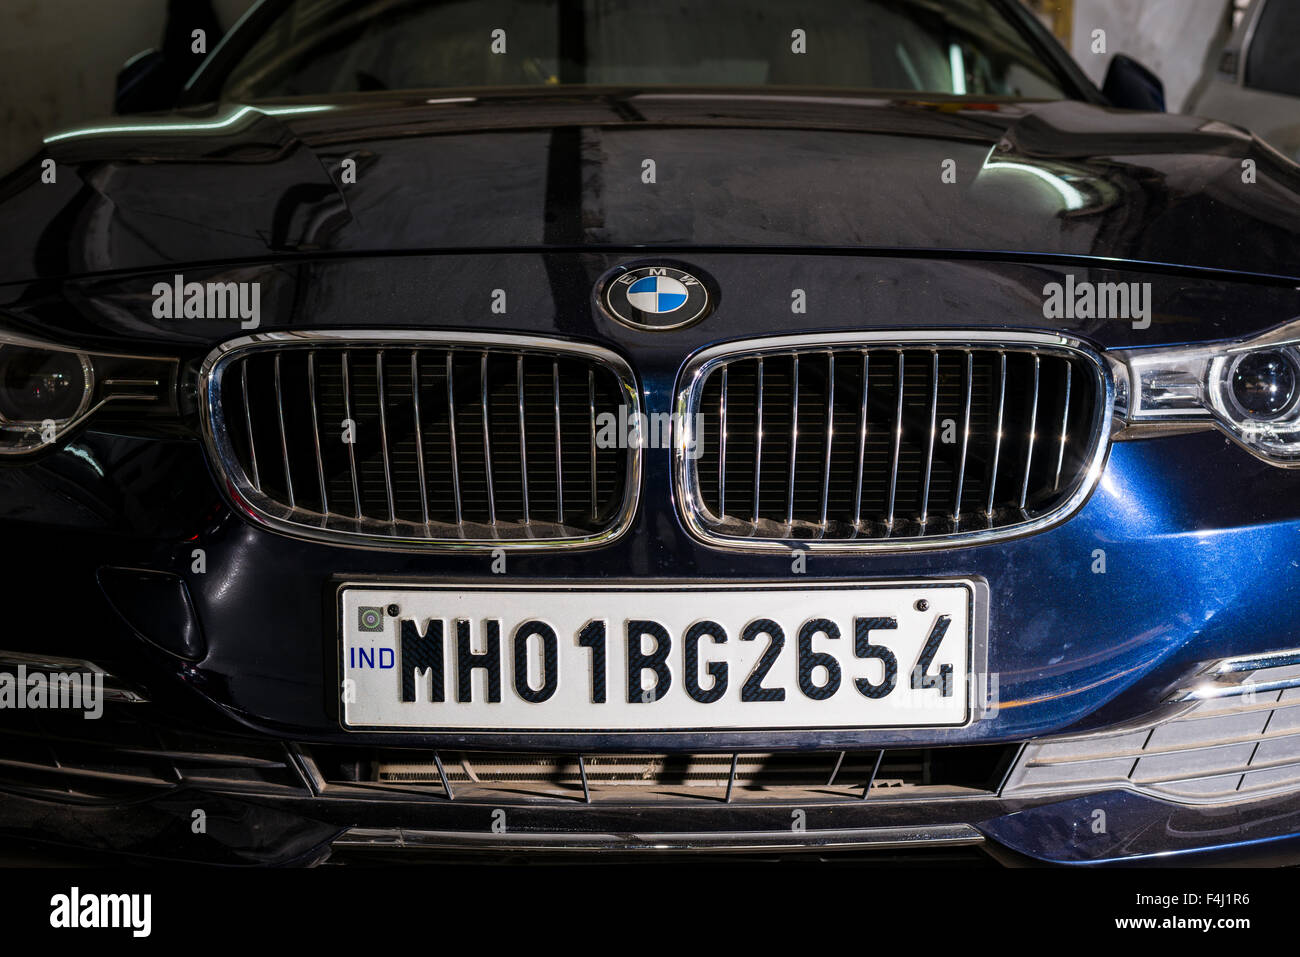 The Front Of A German Bmw Car With A Maharasthra Number Plate A